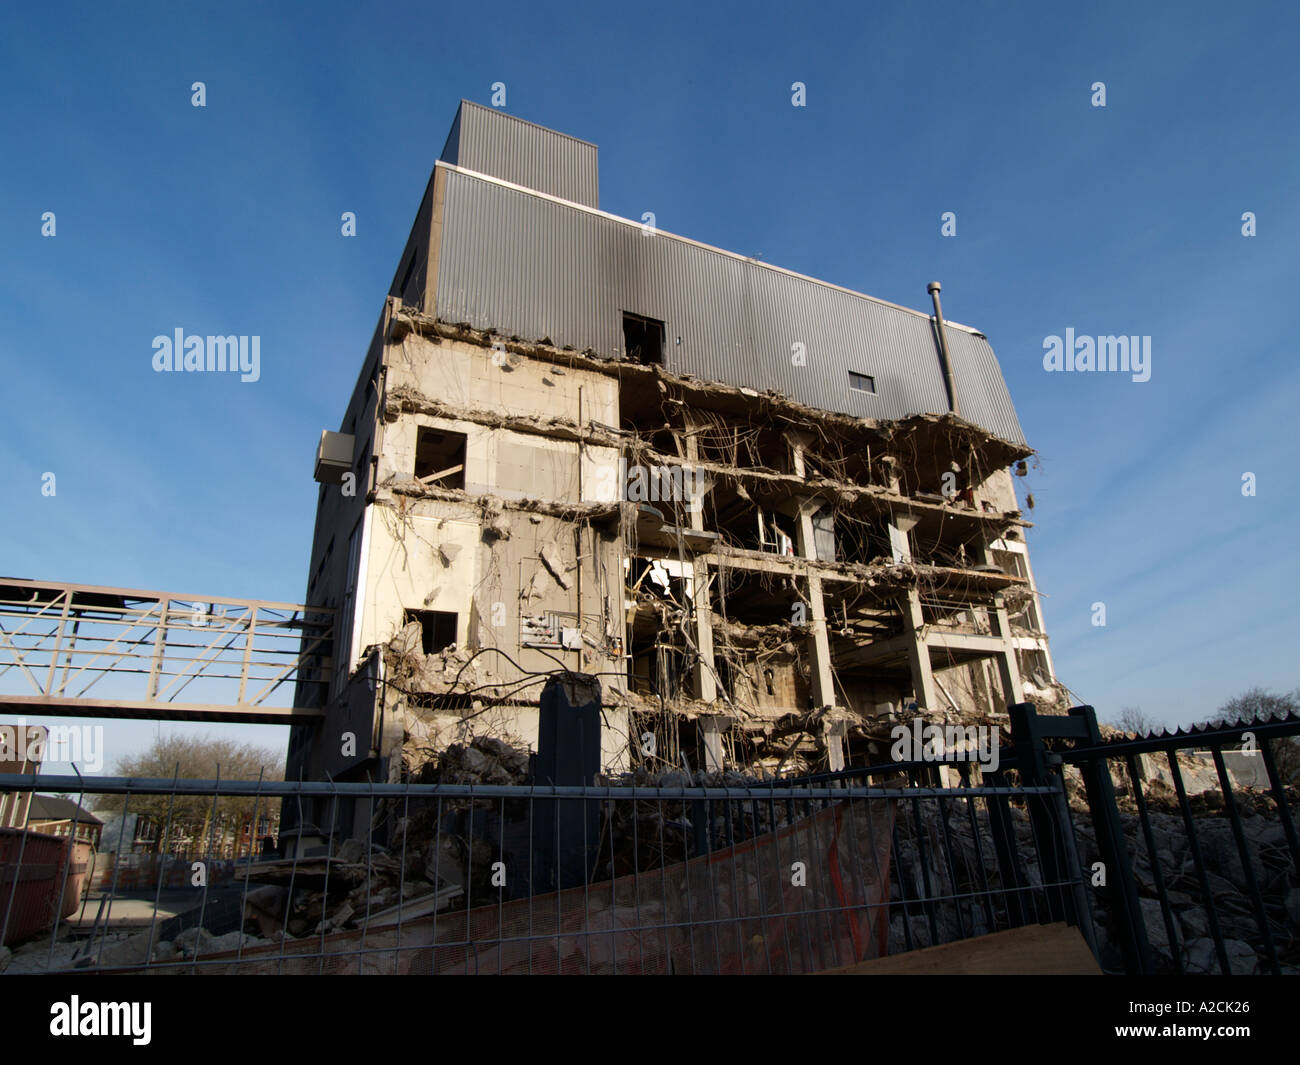 Economy the Oranjeboom Interbrew building is being demolished as production is being centralized elsewhere - Stock Image